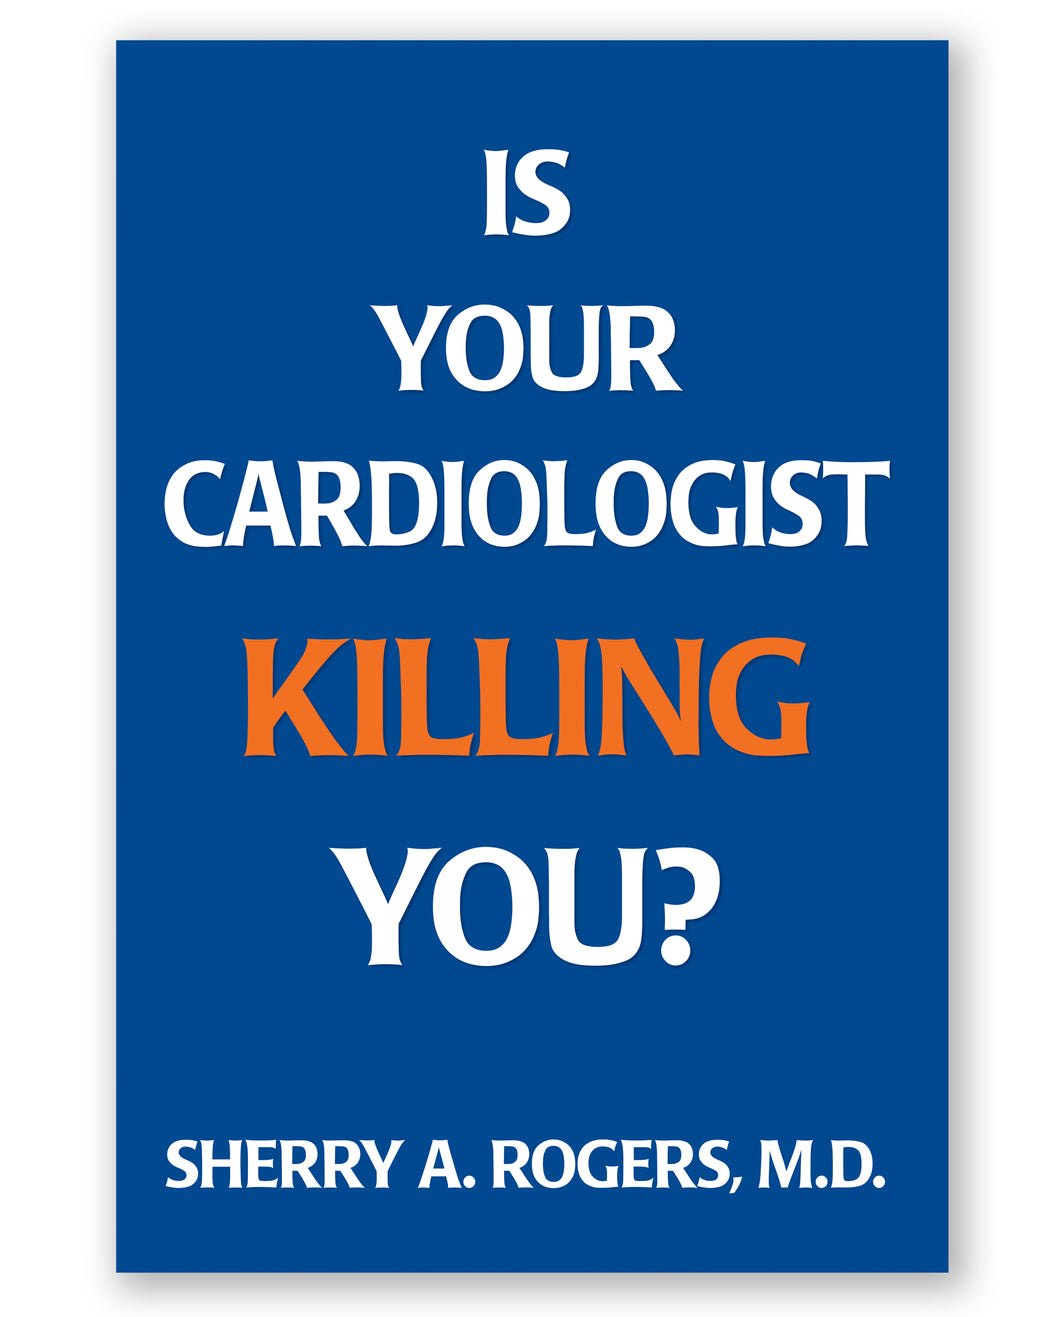 Is Your Cardiologist Killing You? by Sherry A Rogers, M.D.